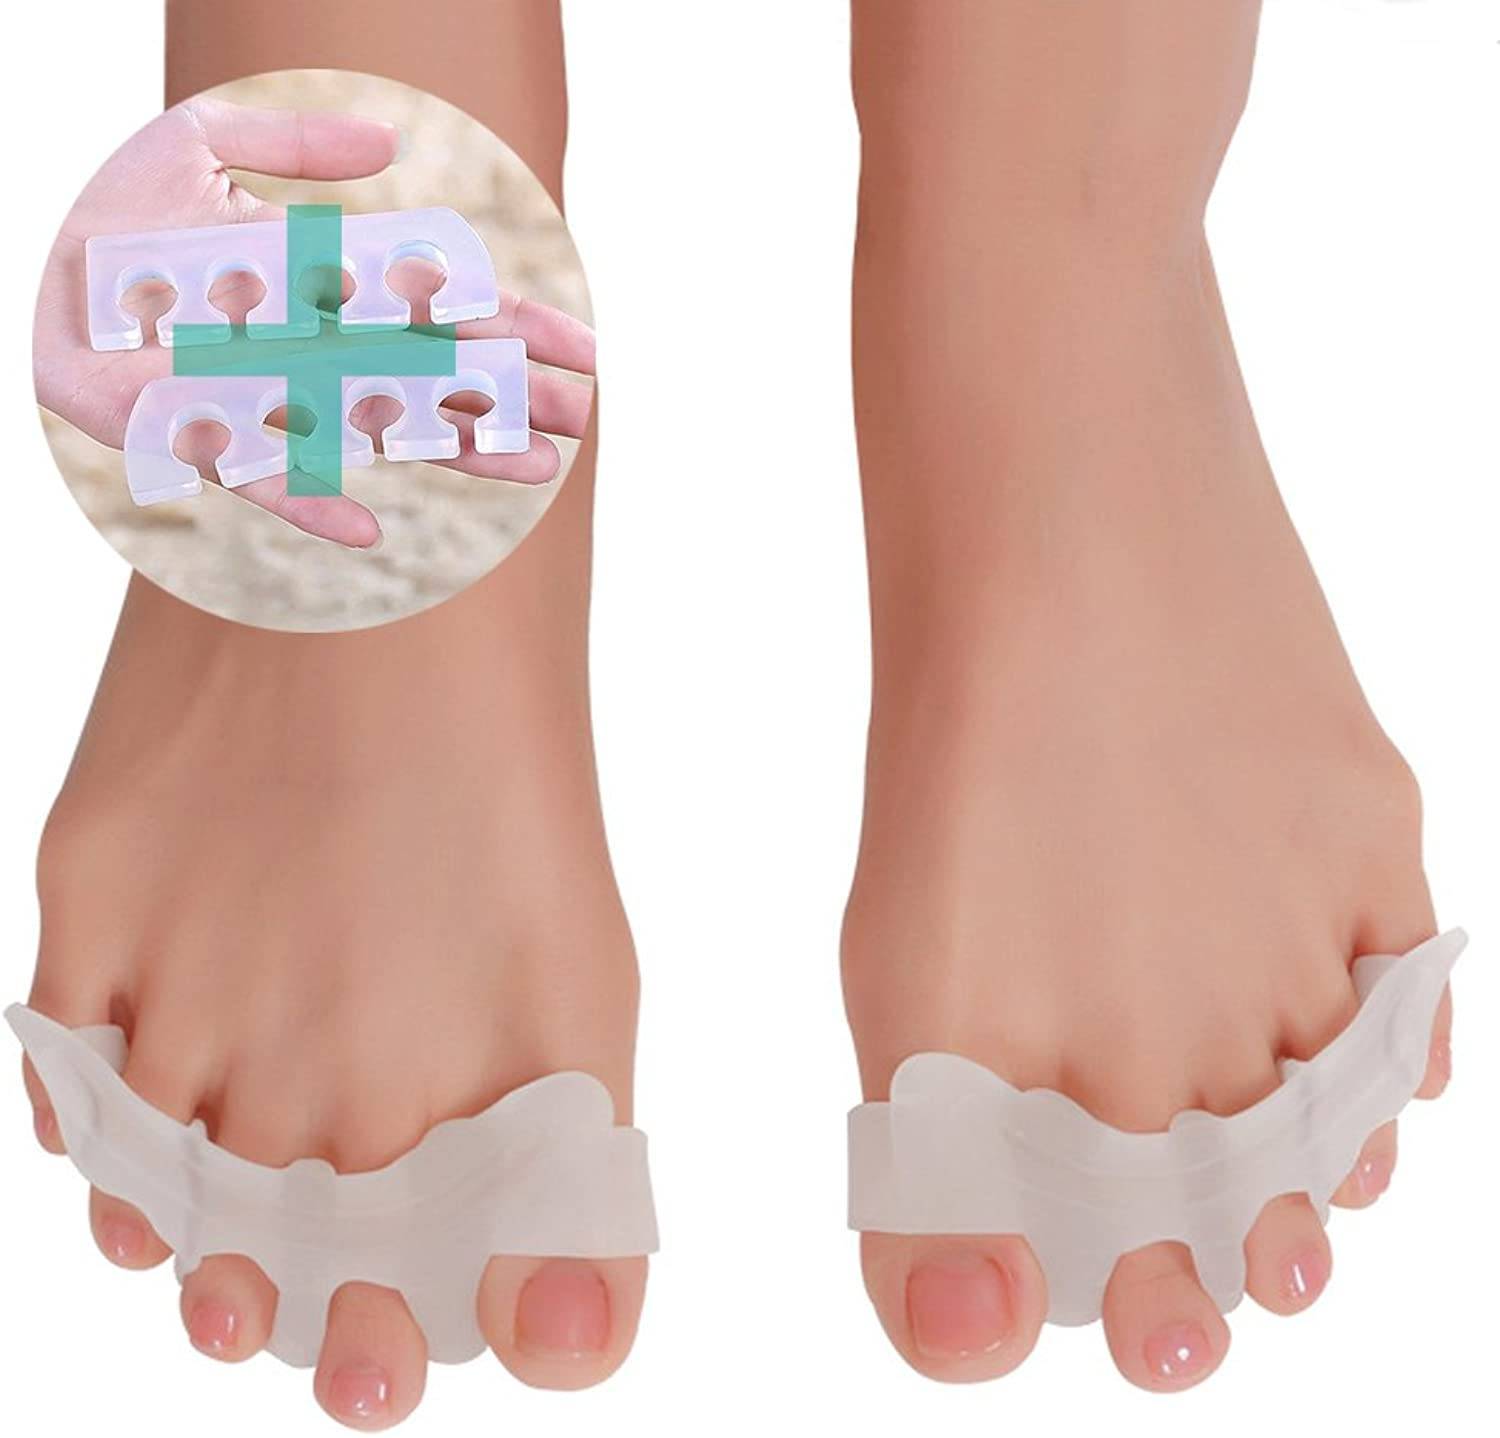 FullWarm toe stretch pad spread toes attitude walking balance sole supporters left and right set edema floating finger posture correction silicon wash OK supporters foot massage legs lower body diet O leg body makeup hallux valgus posture support flat foo